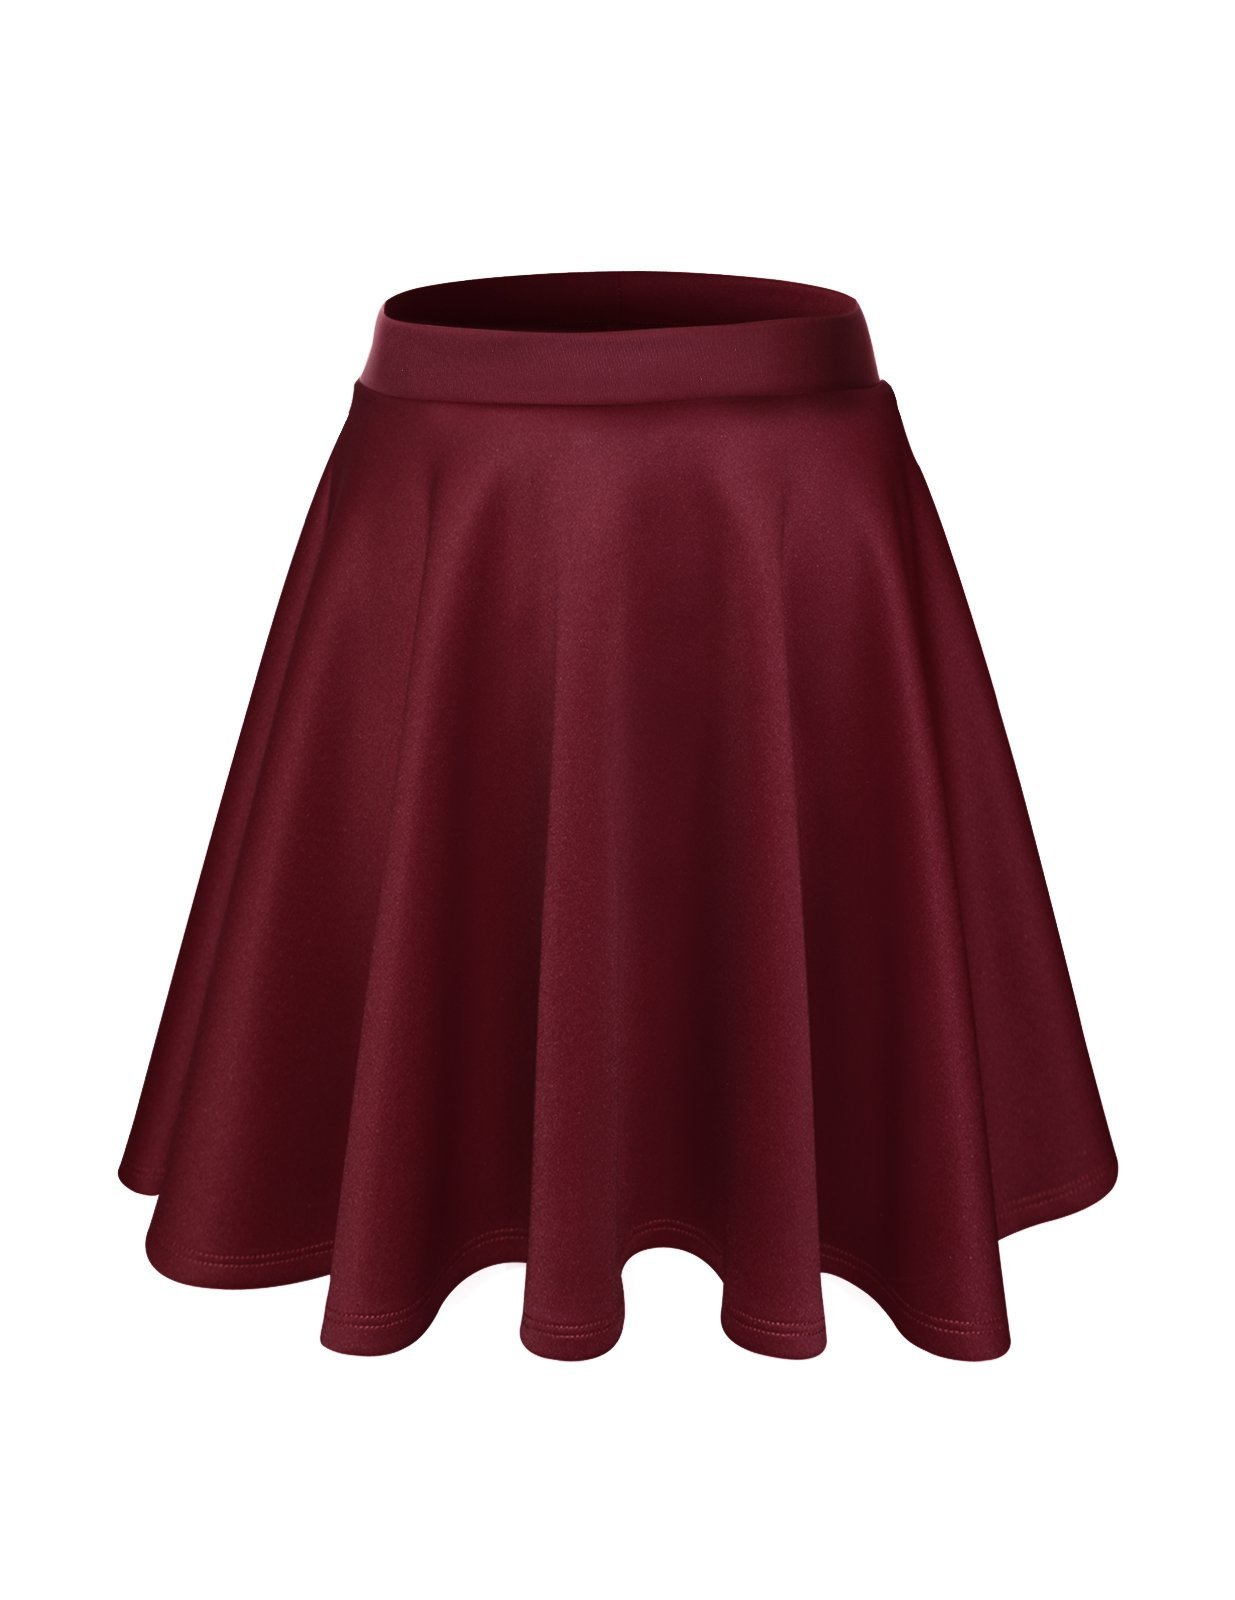 FLATSEVEN Womens Flared Skater Mini Skirt (Made in USA) (WSCX101) Wine, M